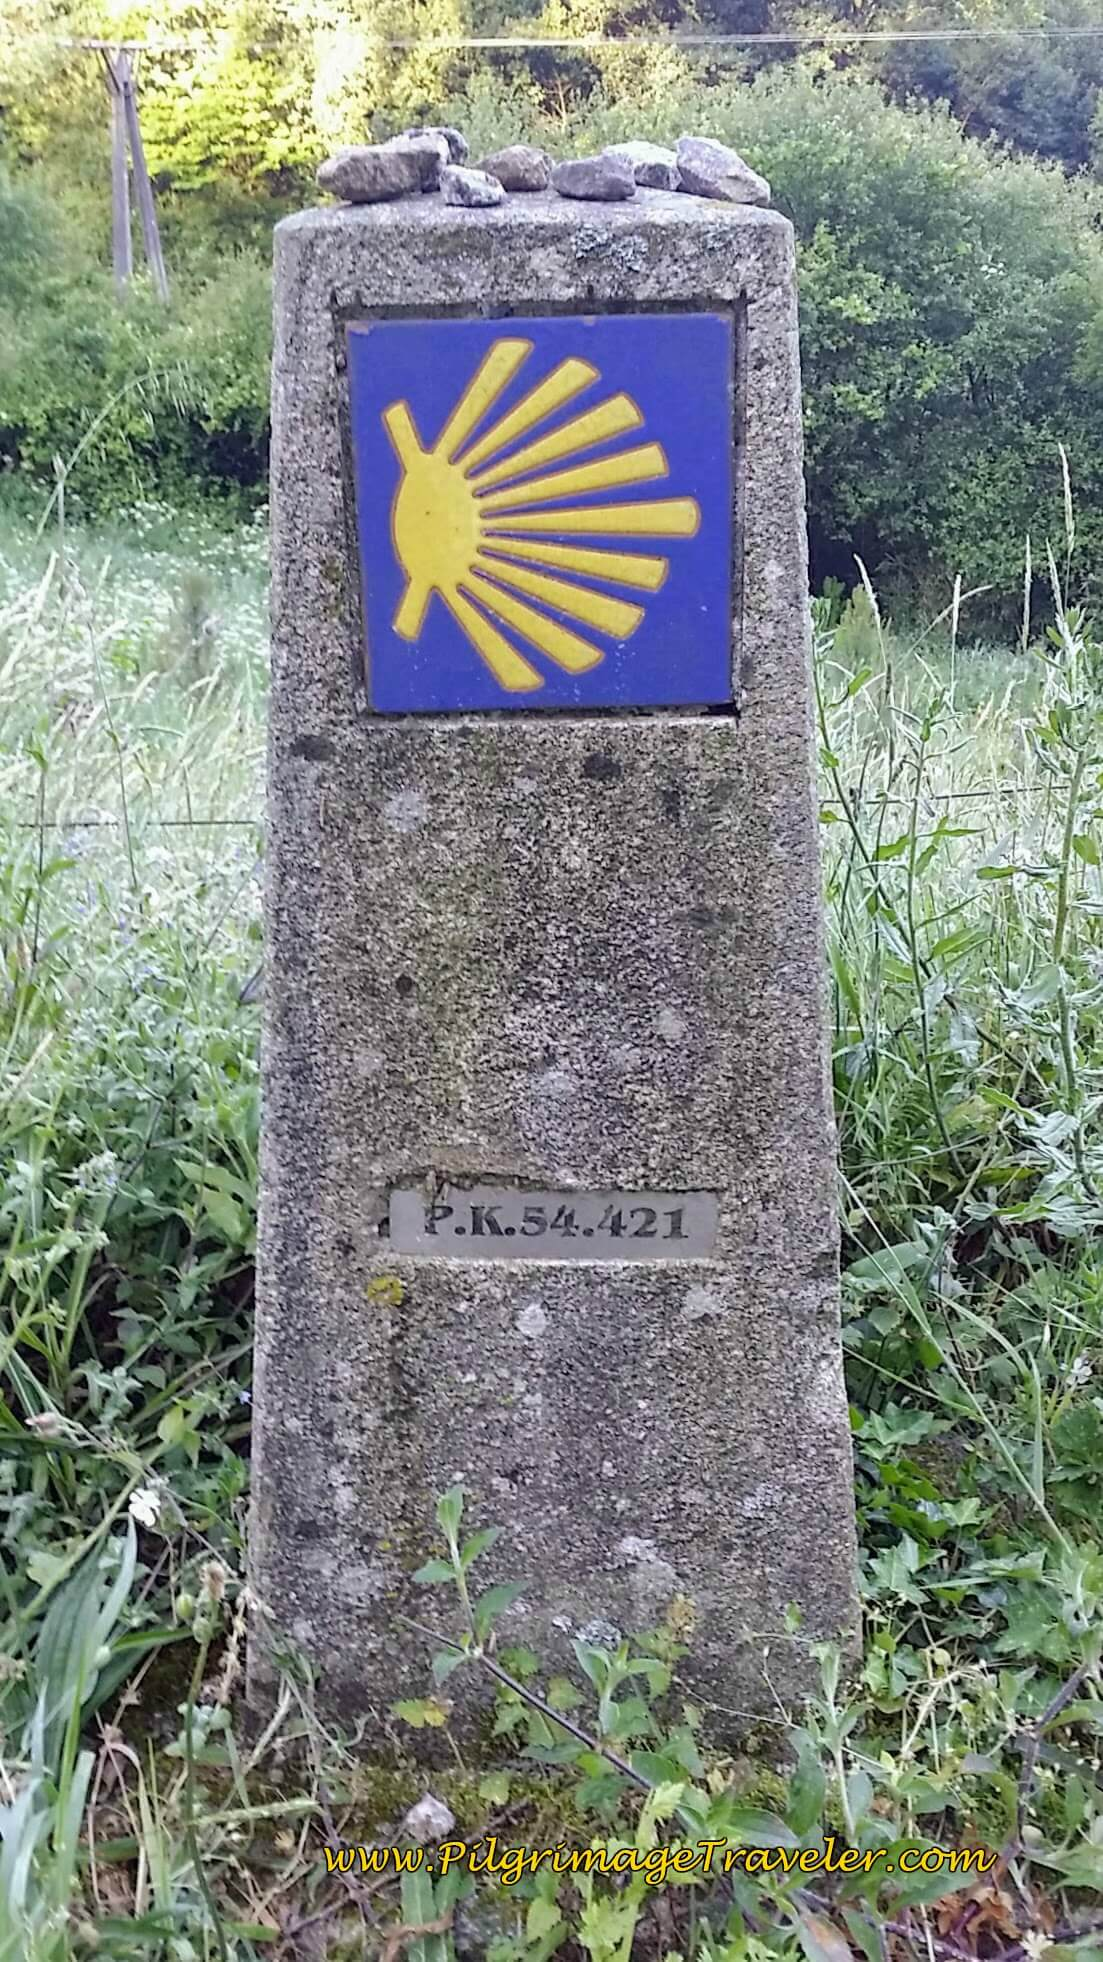 54 Km to Santiago on day twenty-three, Camino Portugués